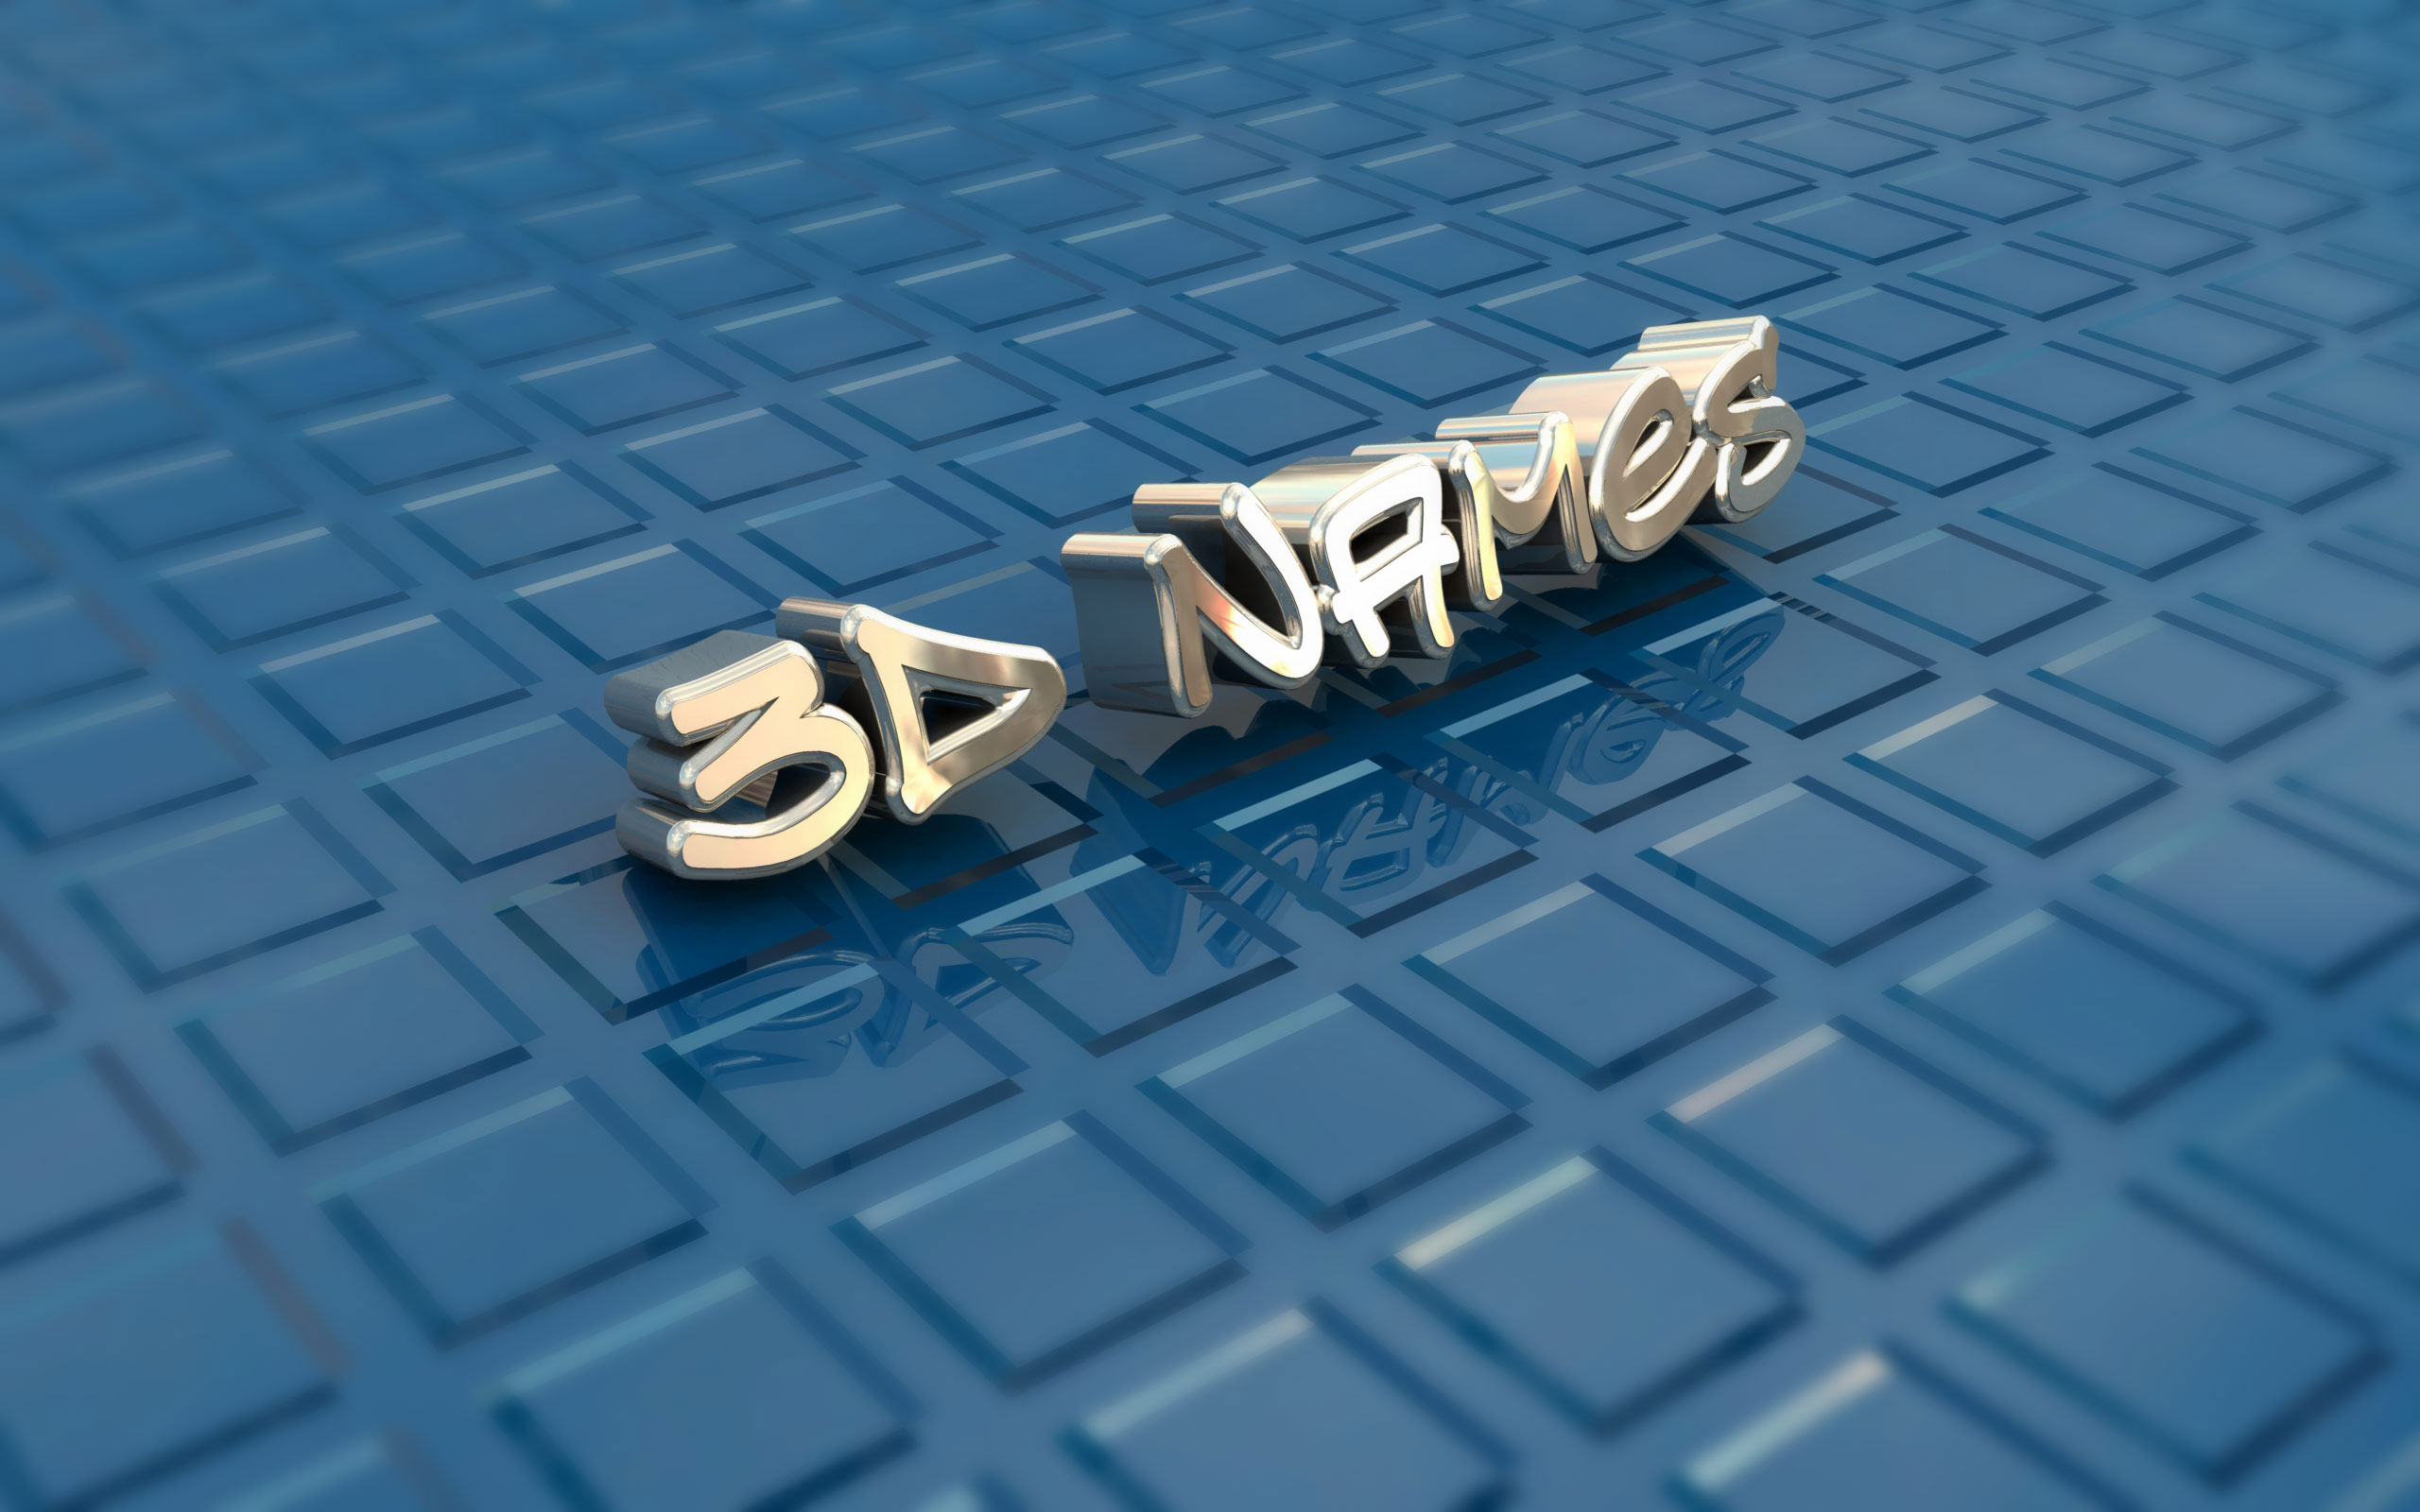 3D Name Wallpaper For Pc